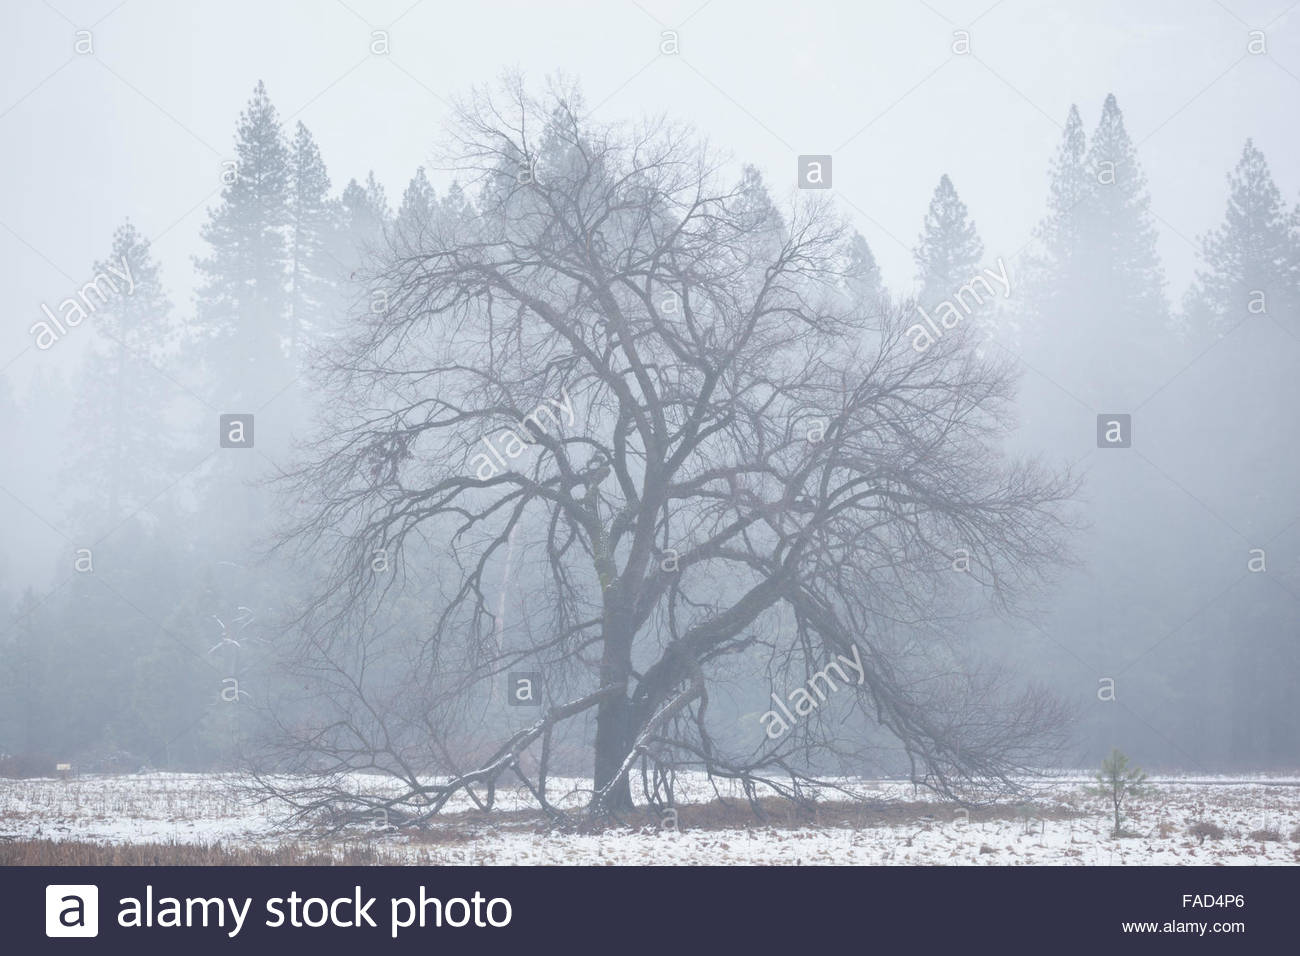 Elm Tree in Late Fall Snow Storm, Yosemite National Park, California - Stock Image